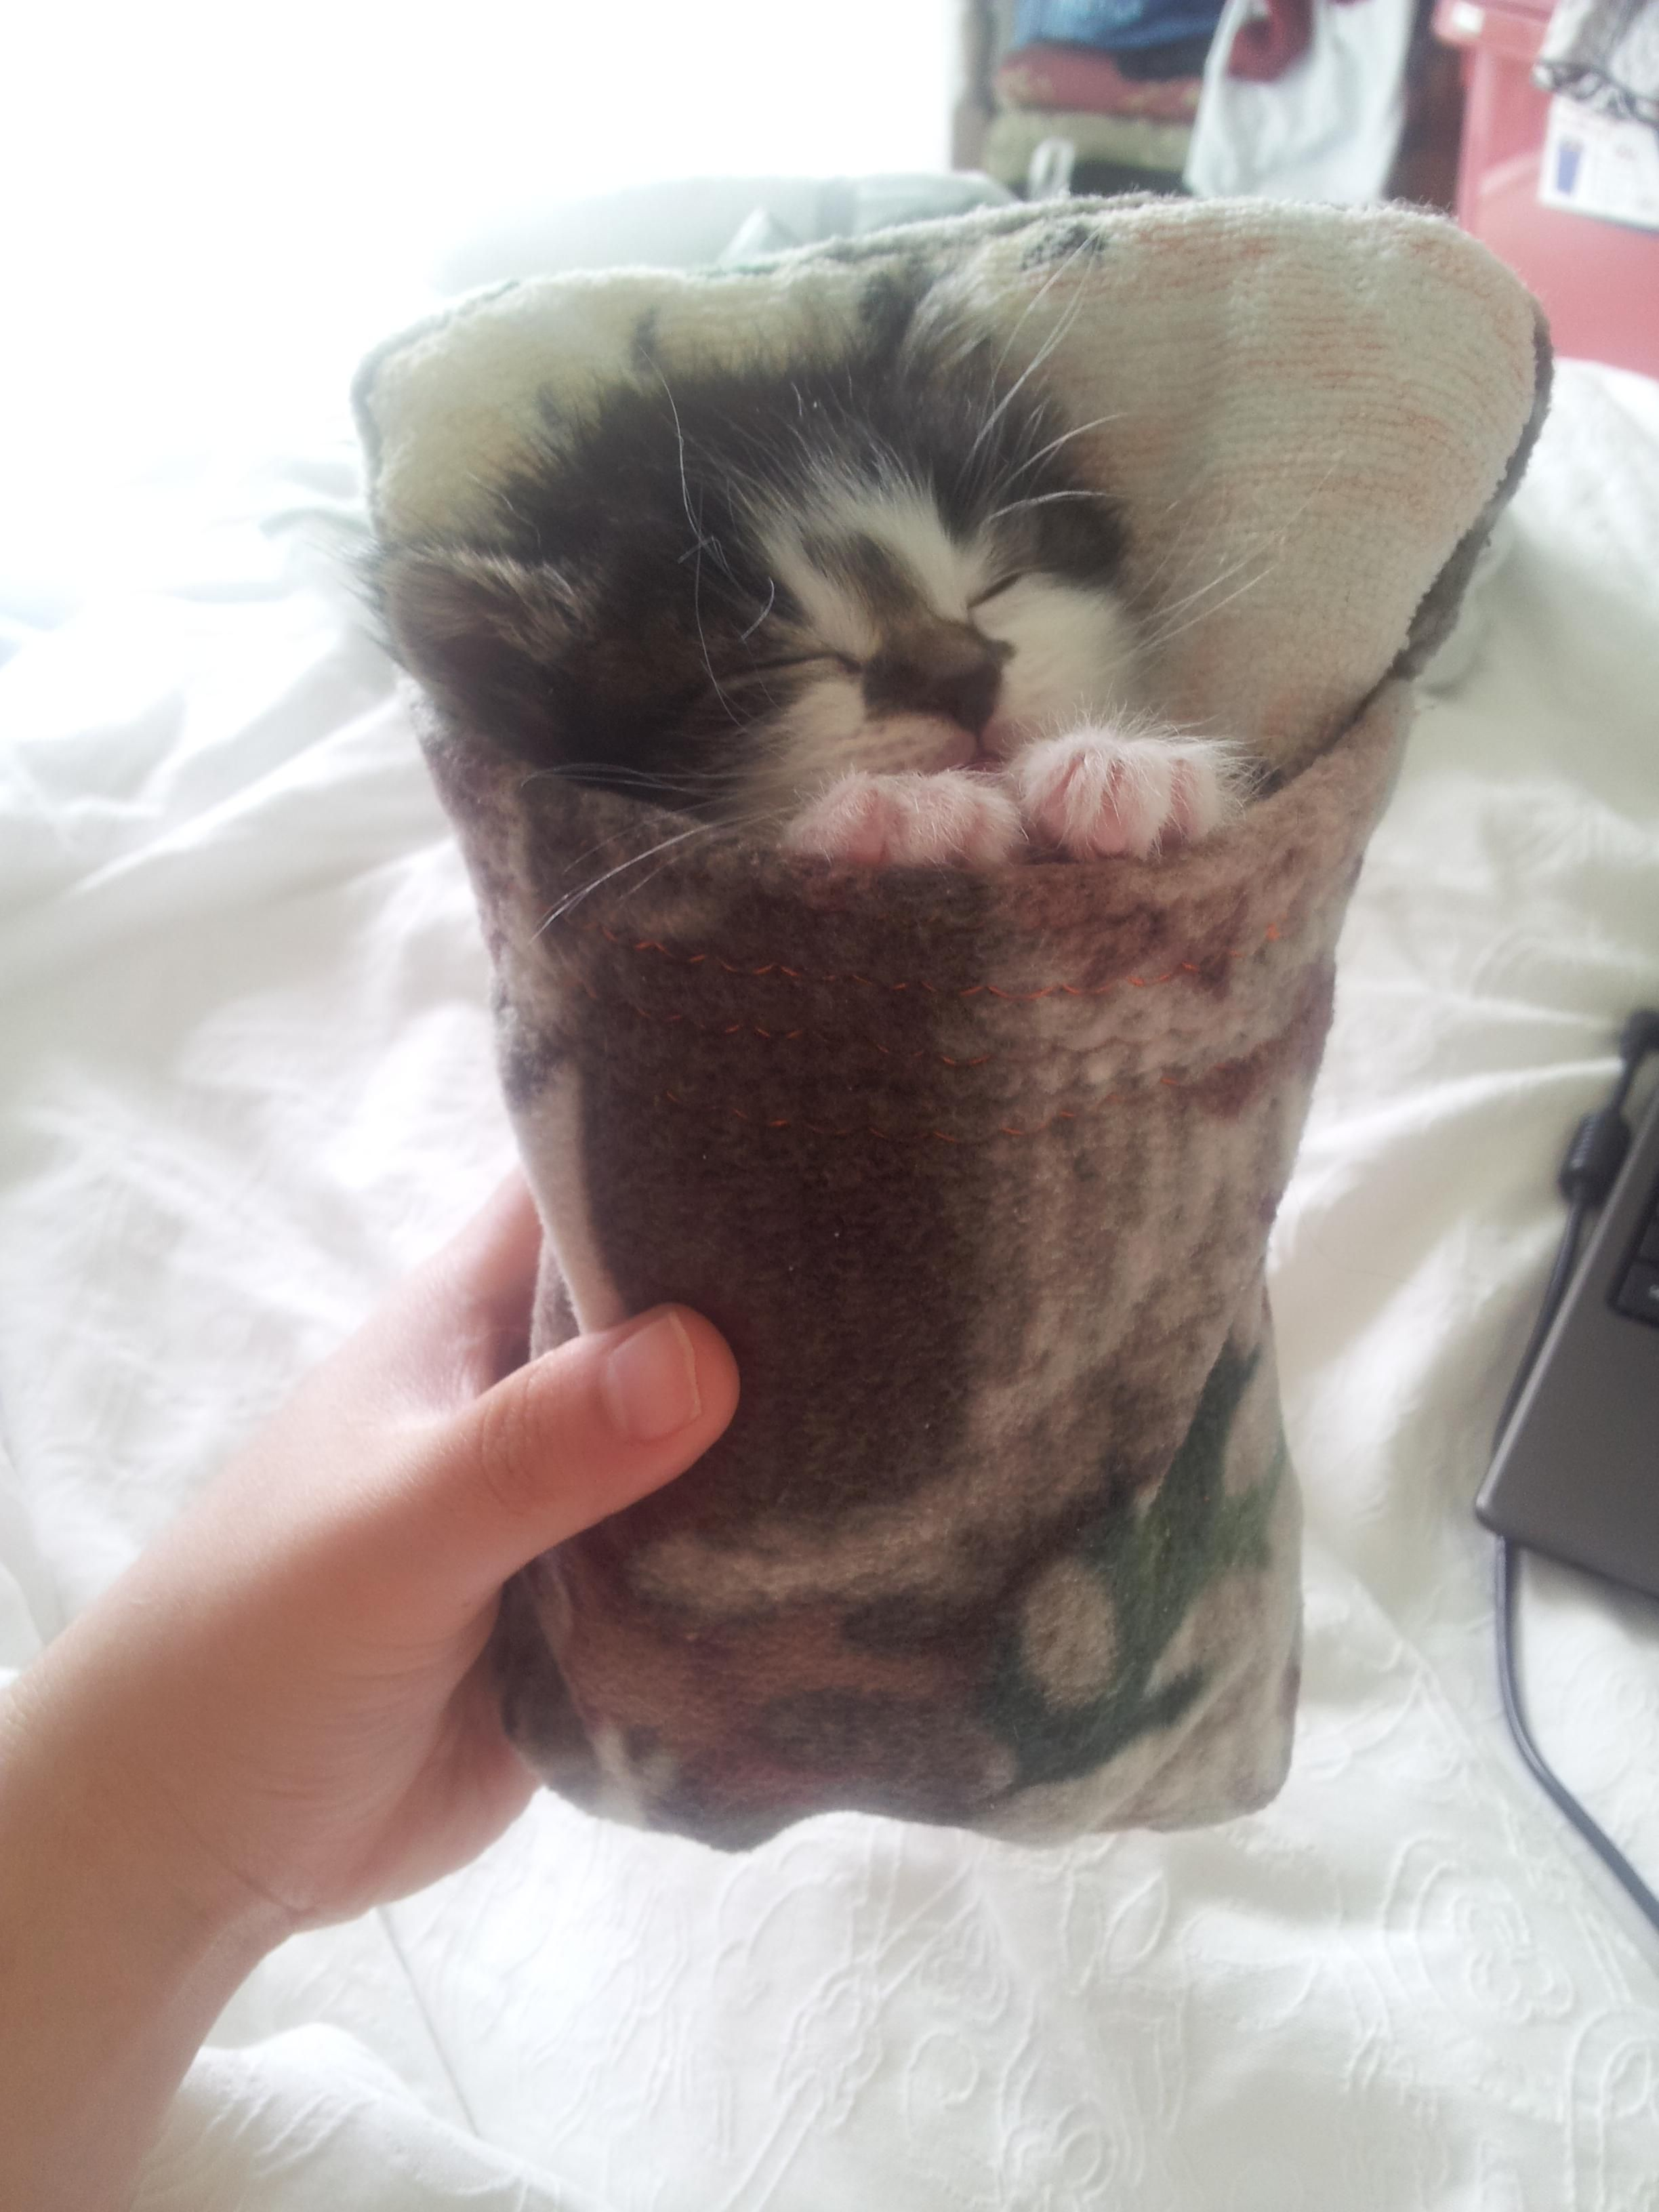 My Girlfriend Made A Sleeping Bag For Our 2 Week Old Foster Kitty Sleepy Kitten Cute Animals Baby Cats